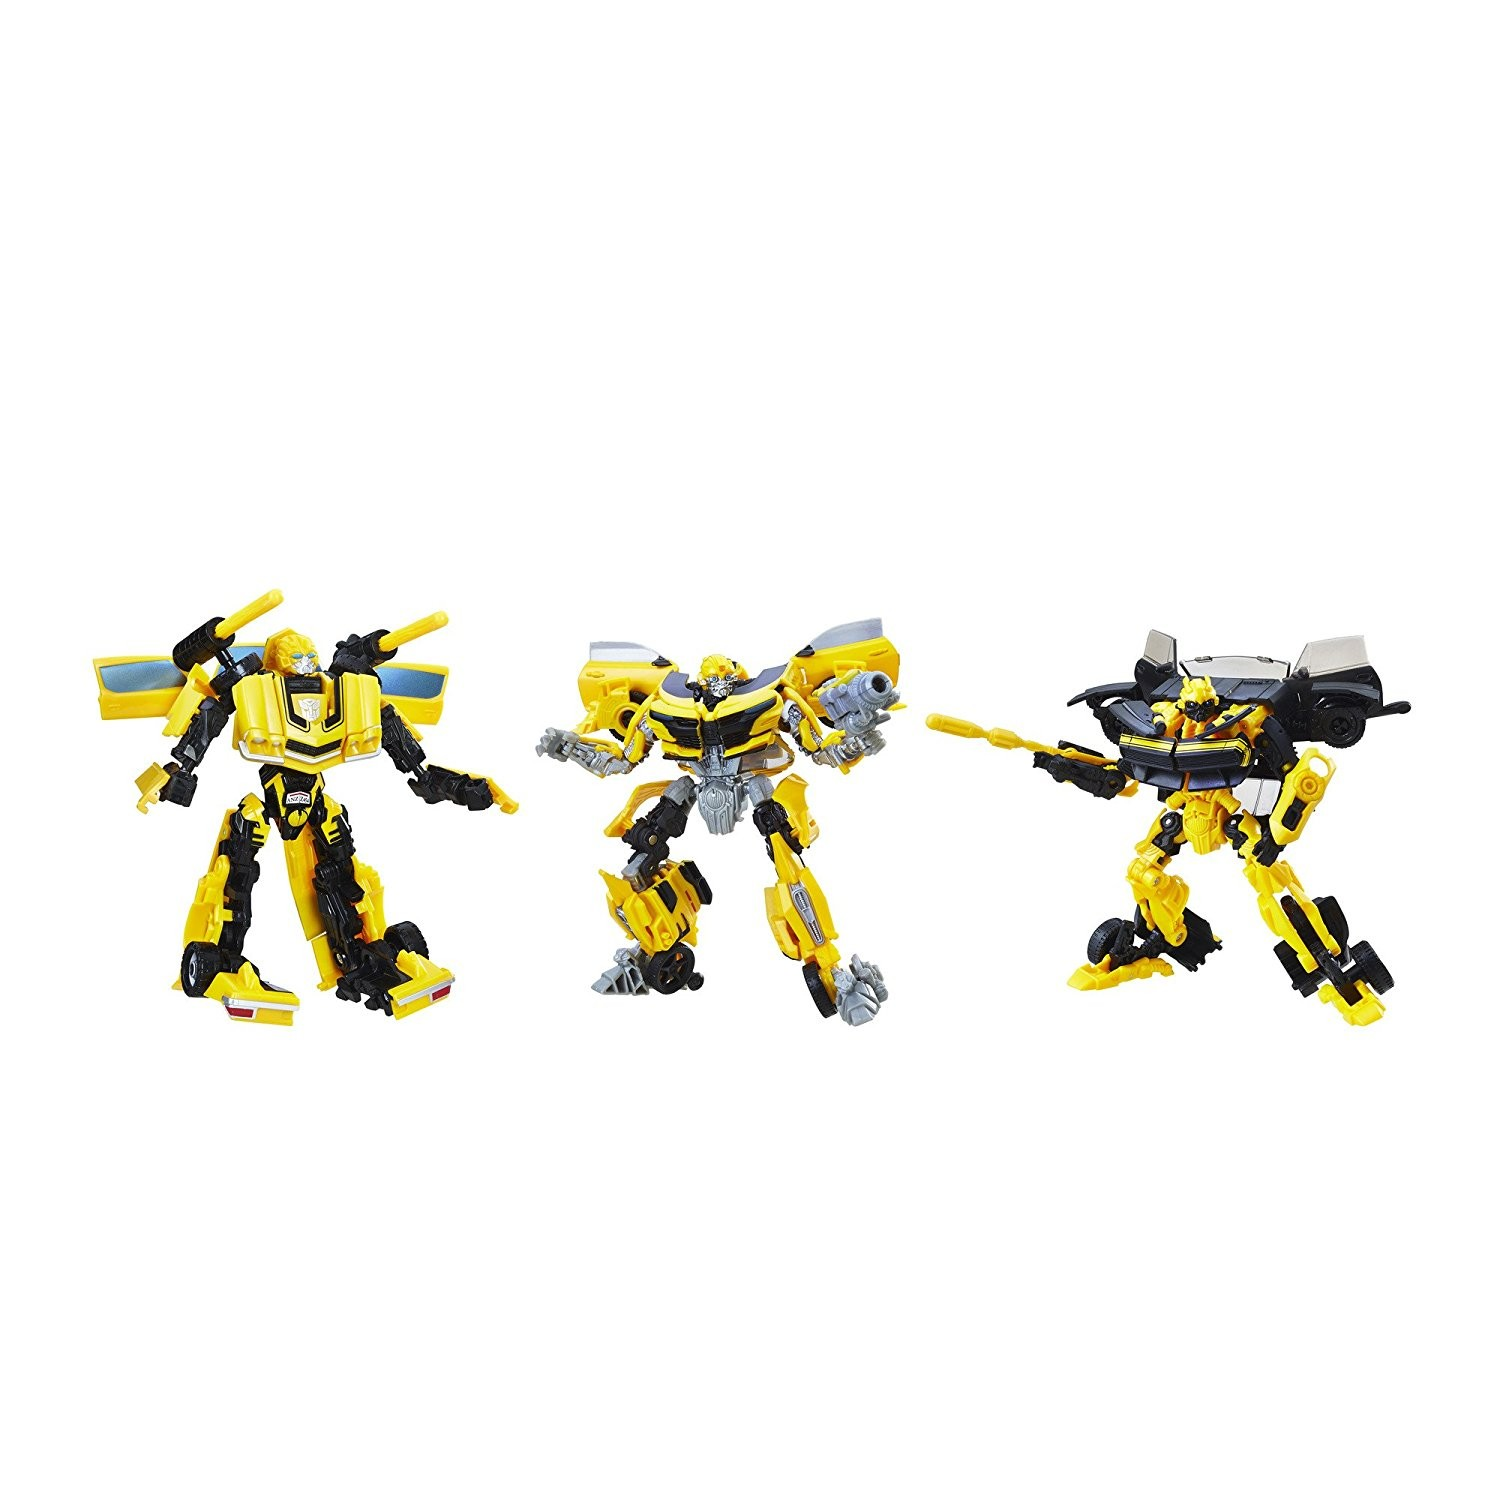 Transformers News: Transformers Bumblebee Evolution 3-Pack Amazon Exclusive Available now!